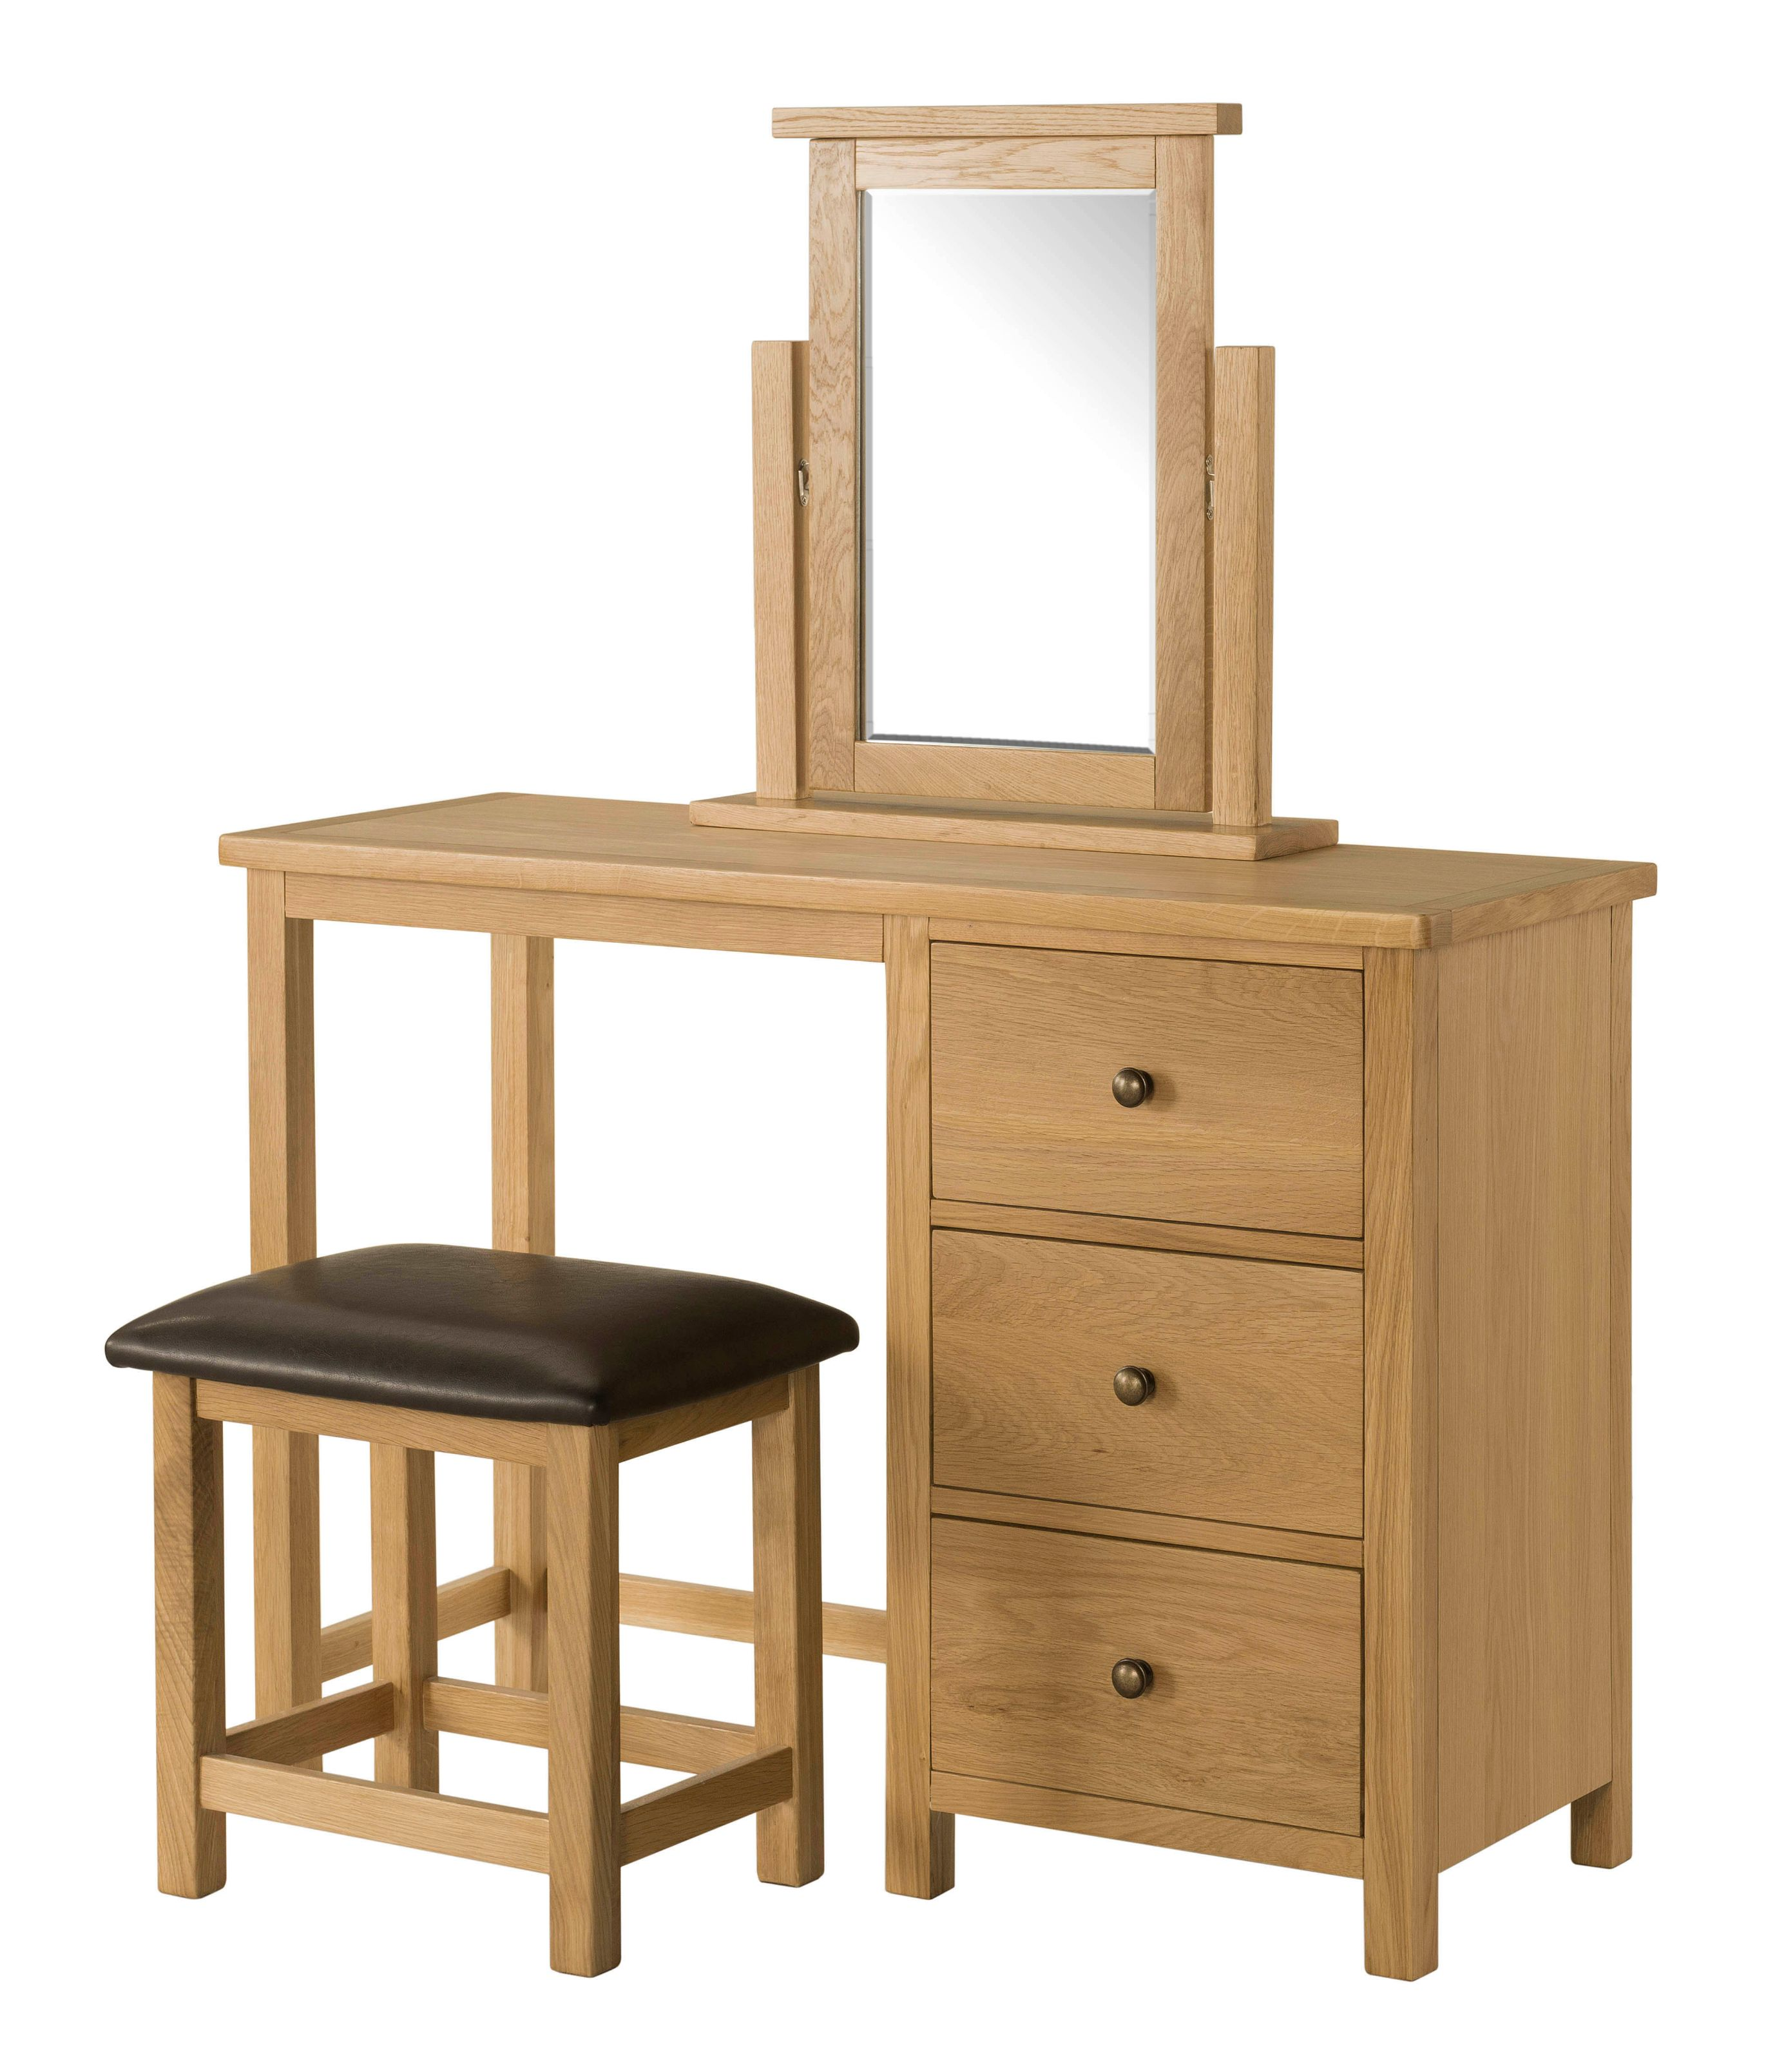 BROUGH OAK Dressing Table, Stool and Mirror